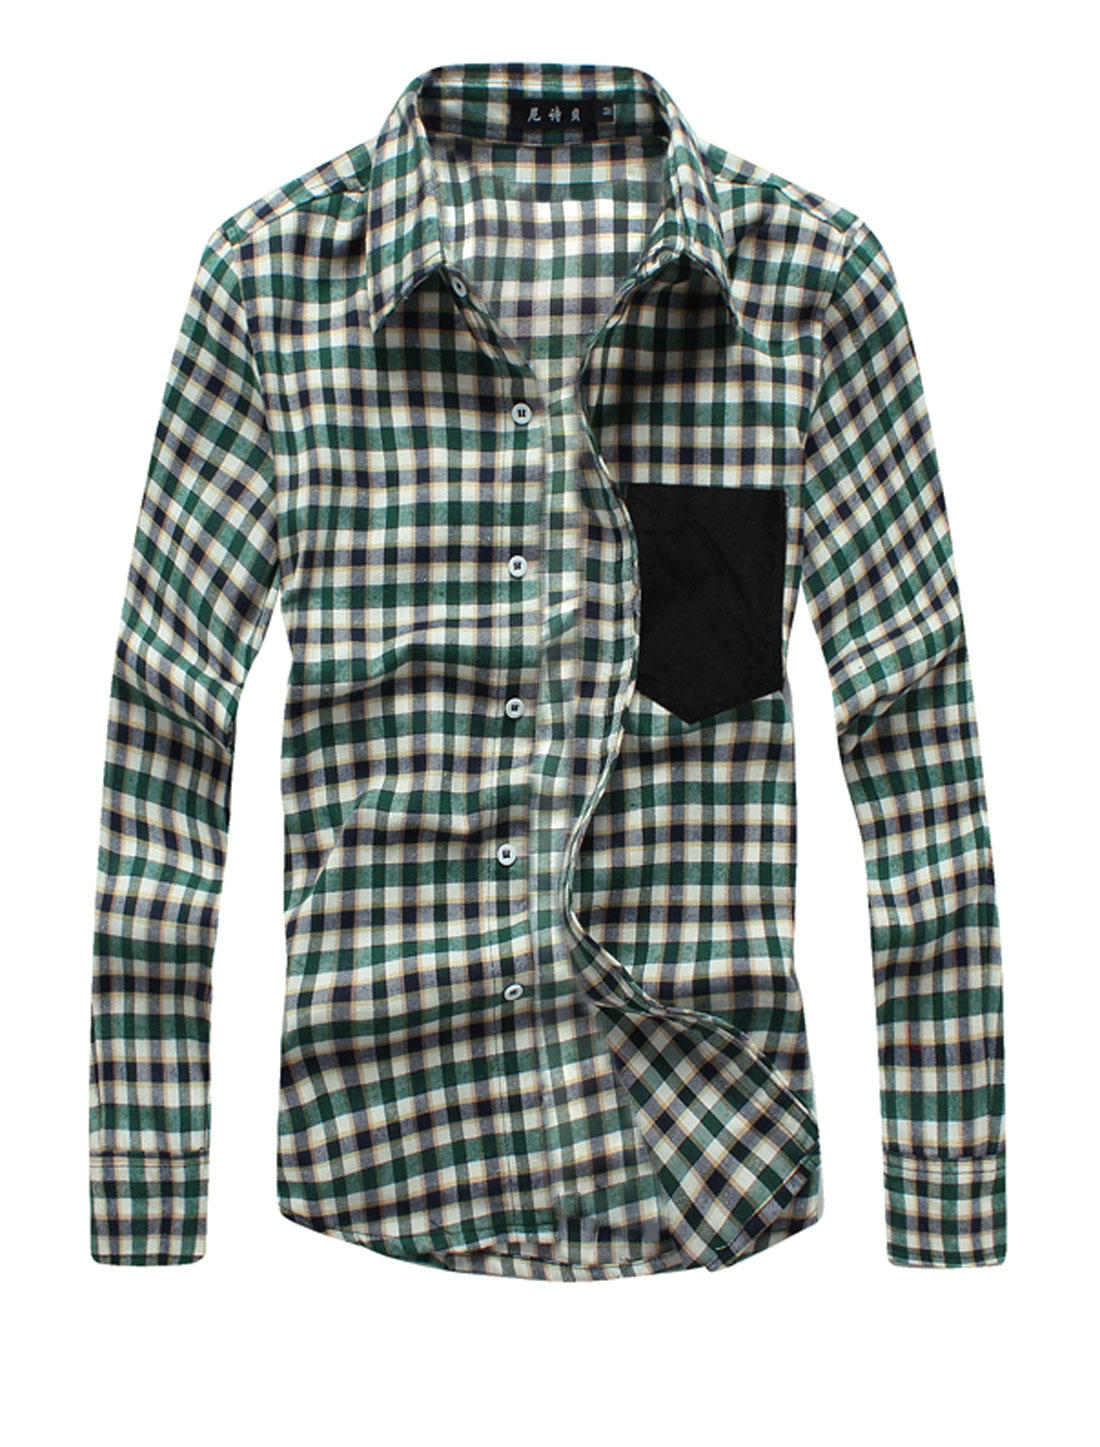 Man New Style Plaids Full Sleeve Point Collar Green Beige Casual Shirts M